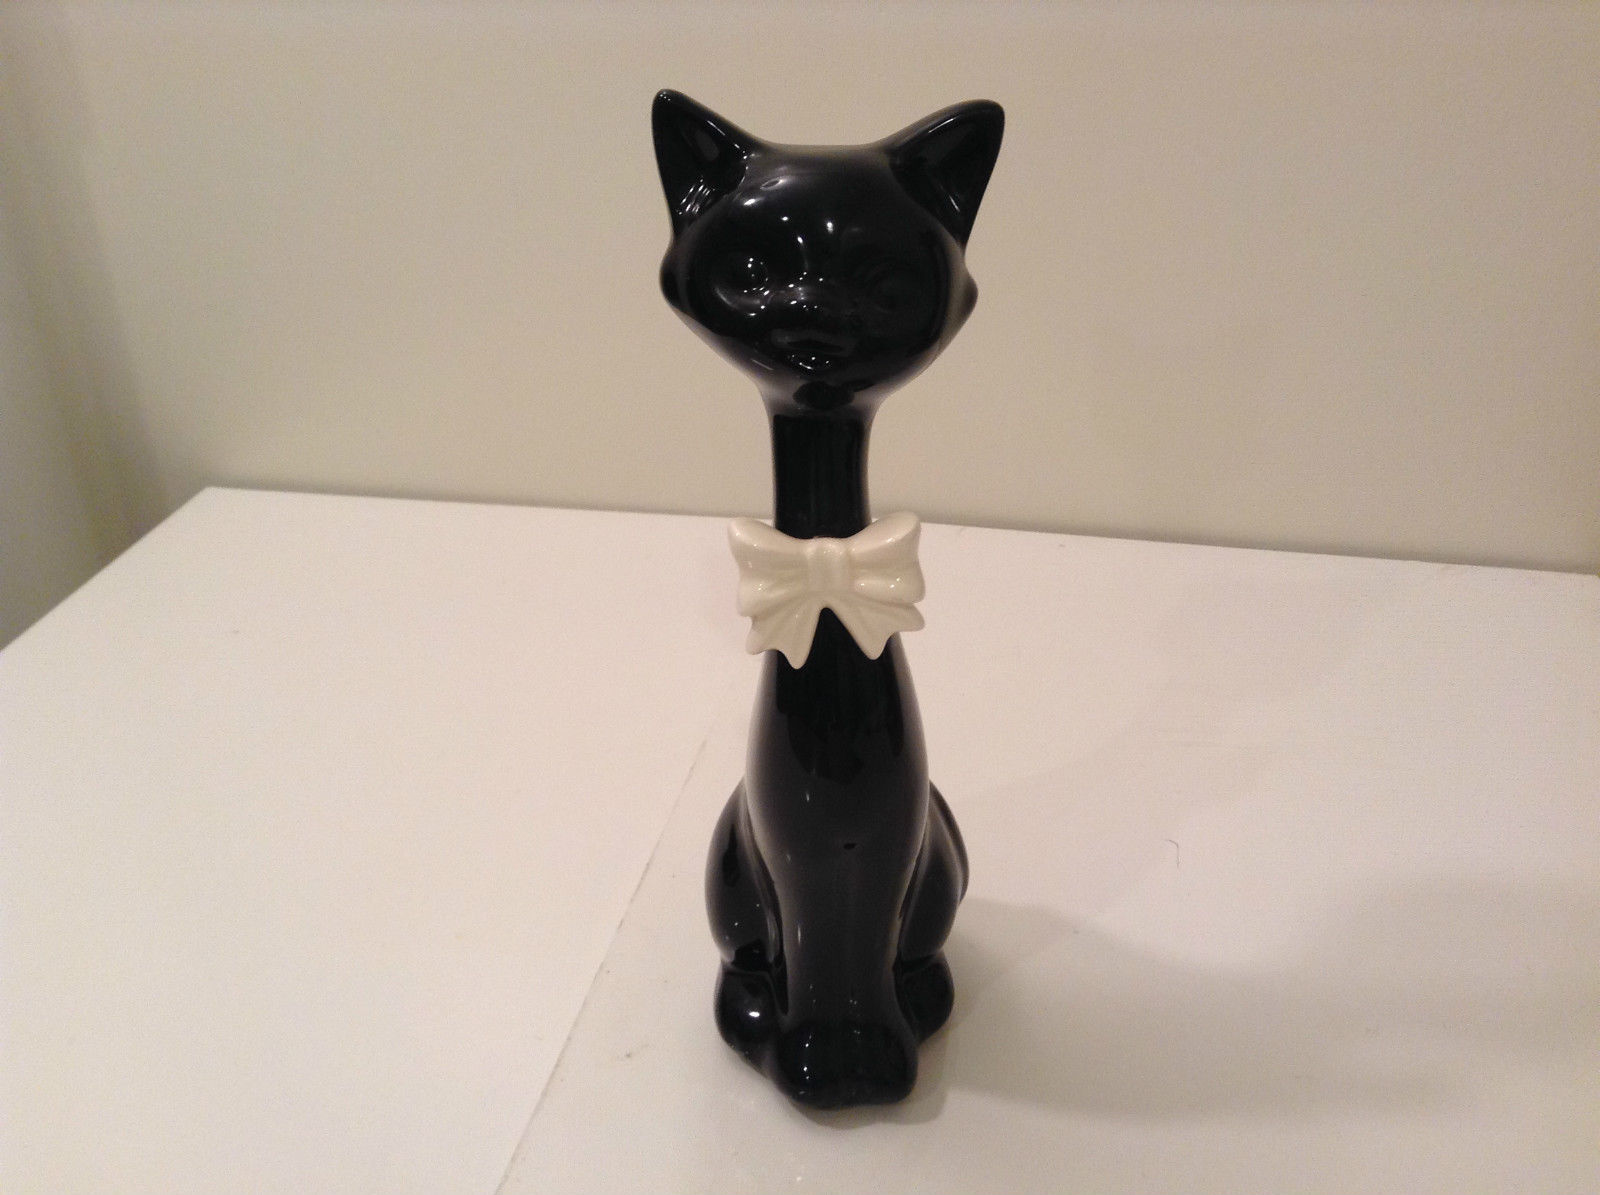 Primary image for Eight Inches Tall Black Ceramic Cat Figurine with White Bow Tie